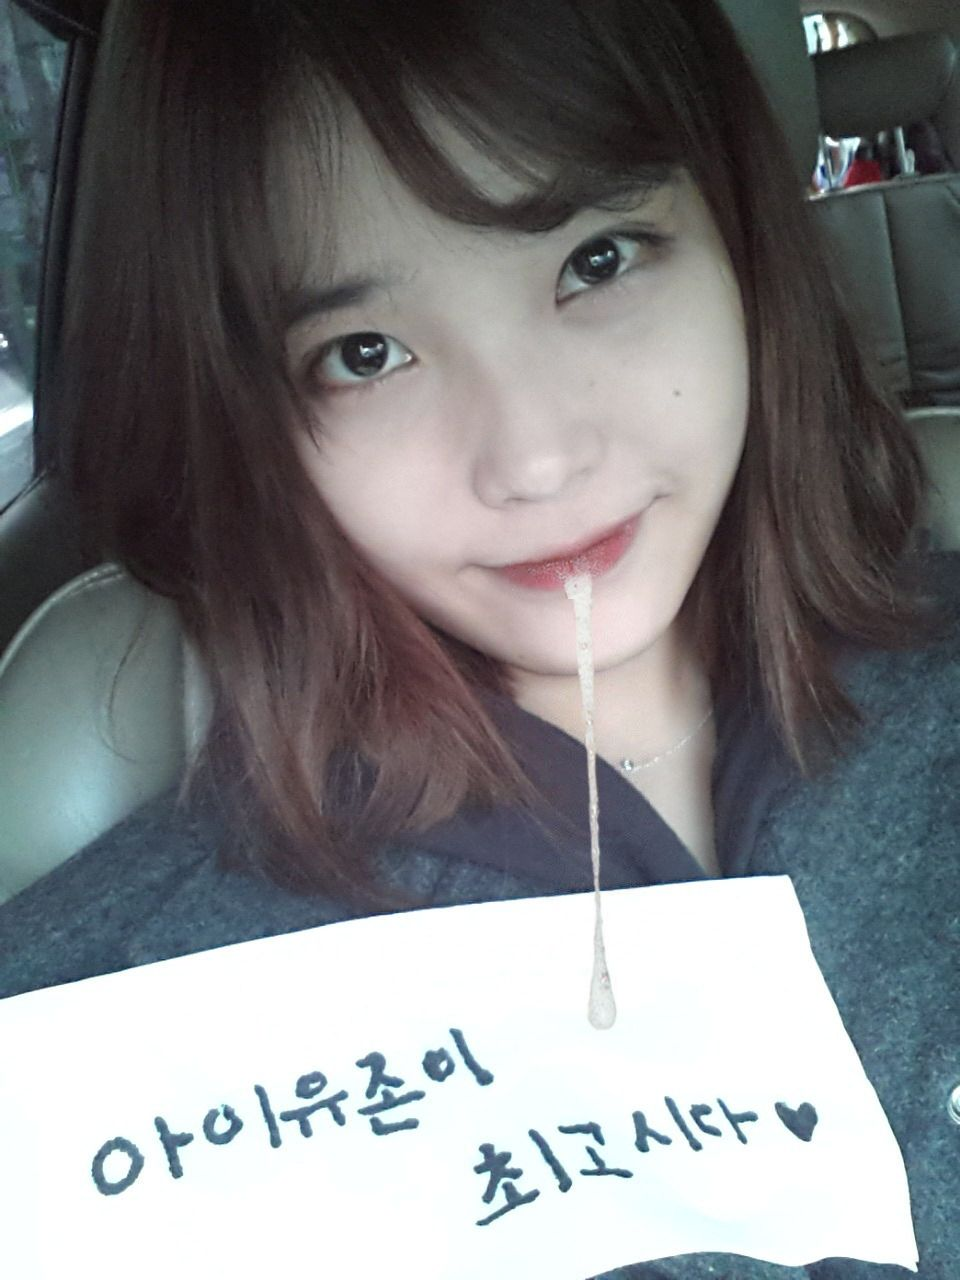 iu nude IU - Korean Idol Fake Nude Photo | 유 | Pinterest | Photos, Idol and Korean  idols